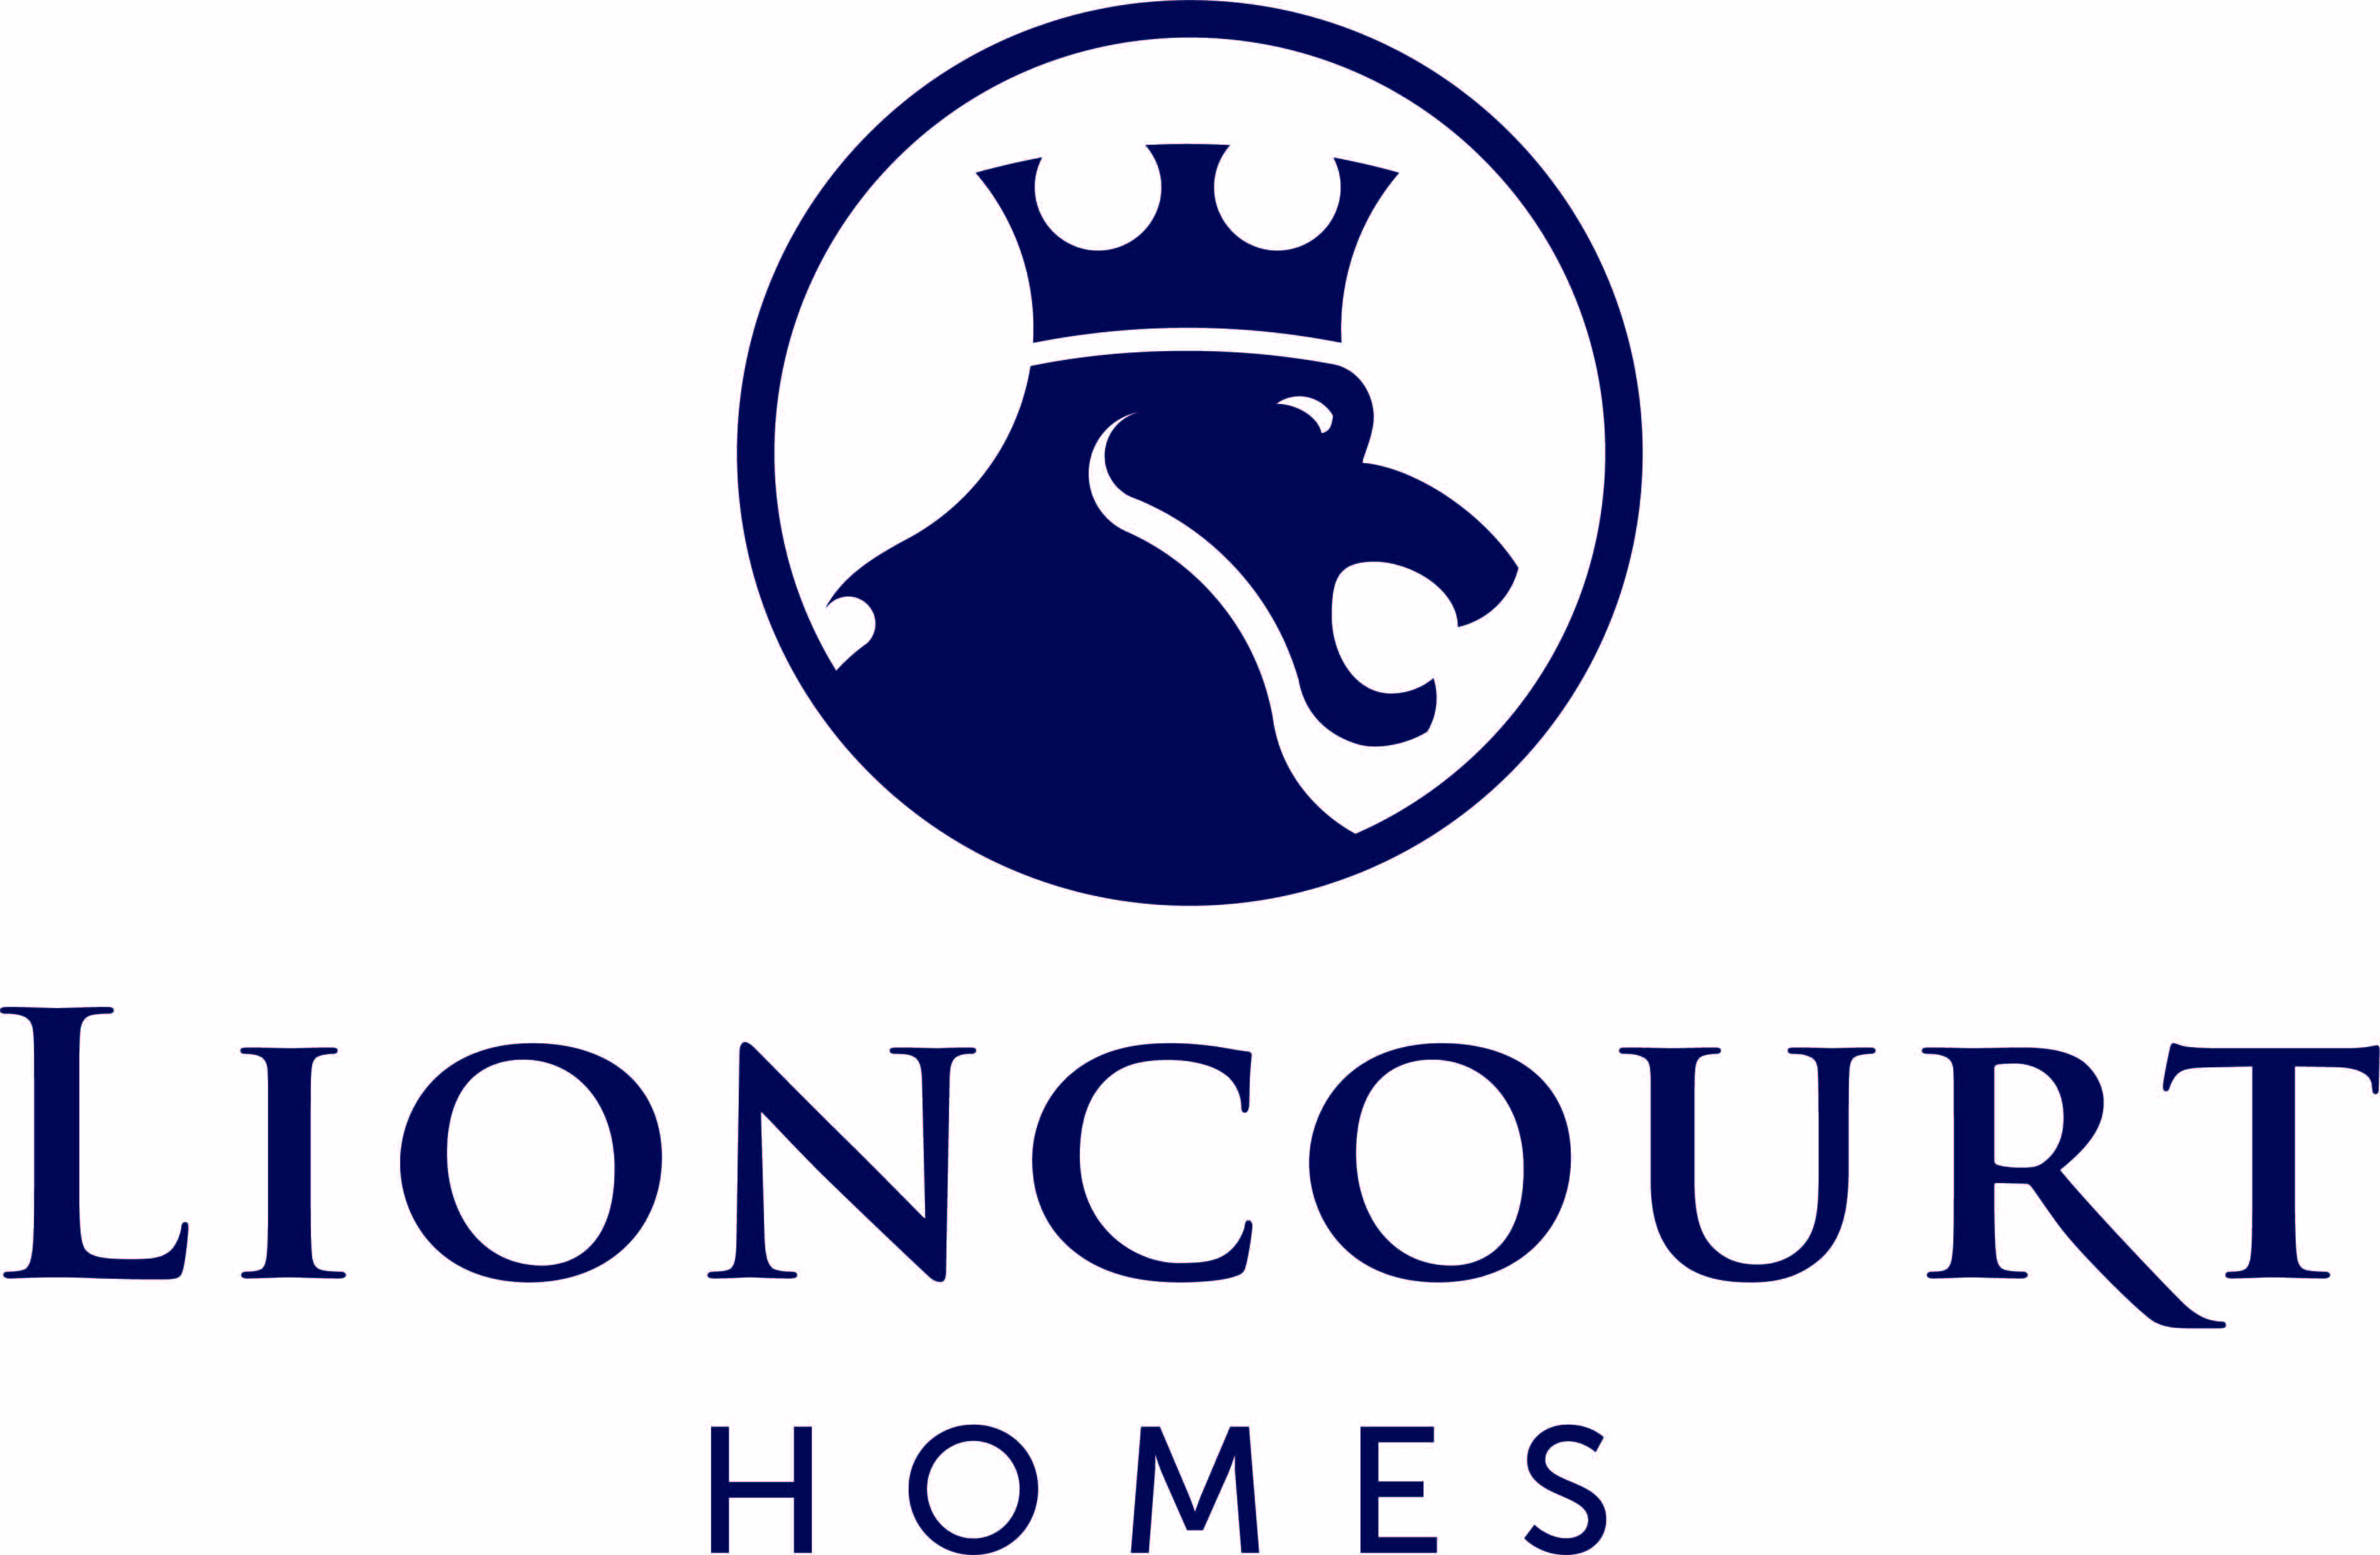 We would like to welcome Lioncourt Homes to ContactBuilder.